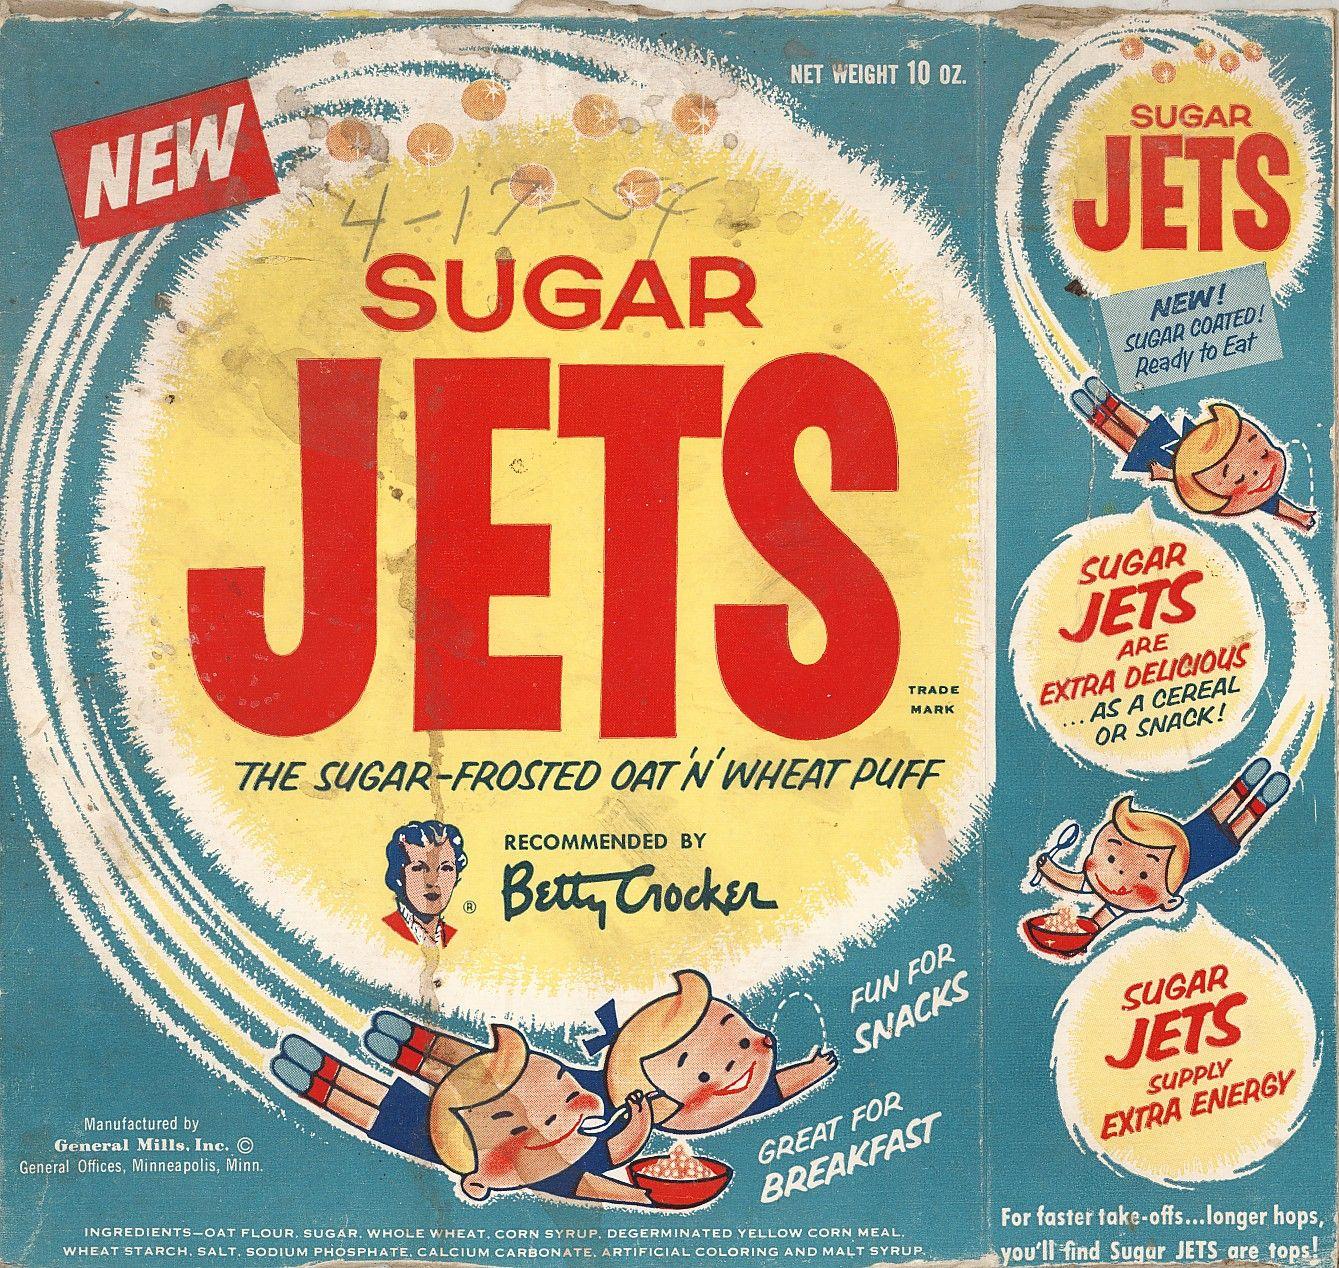 Sugar Jets So Many Primary Colors Vintage Food Products Space